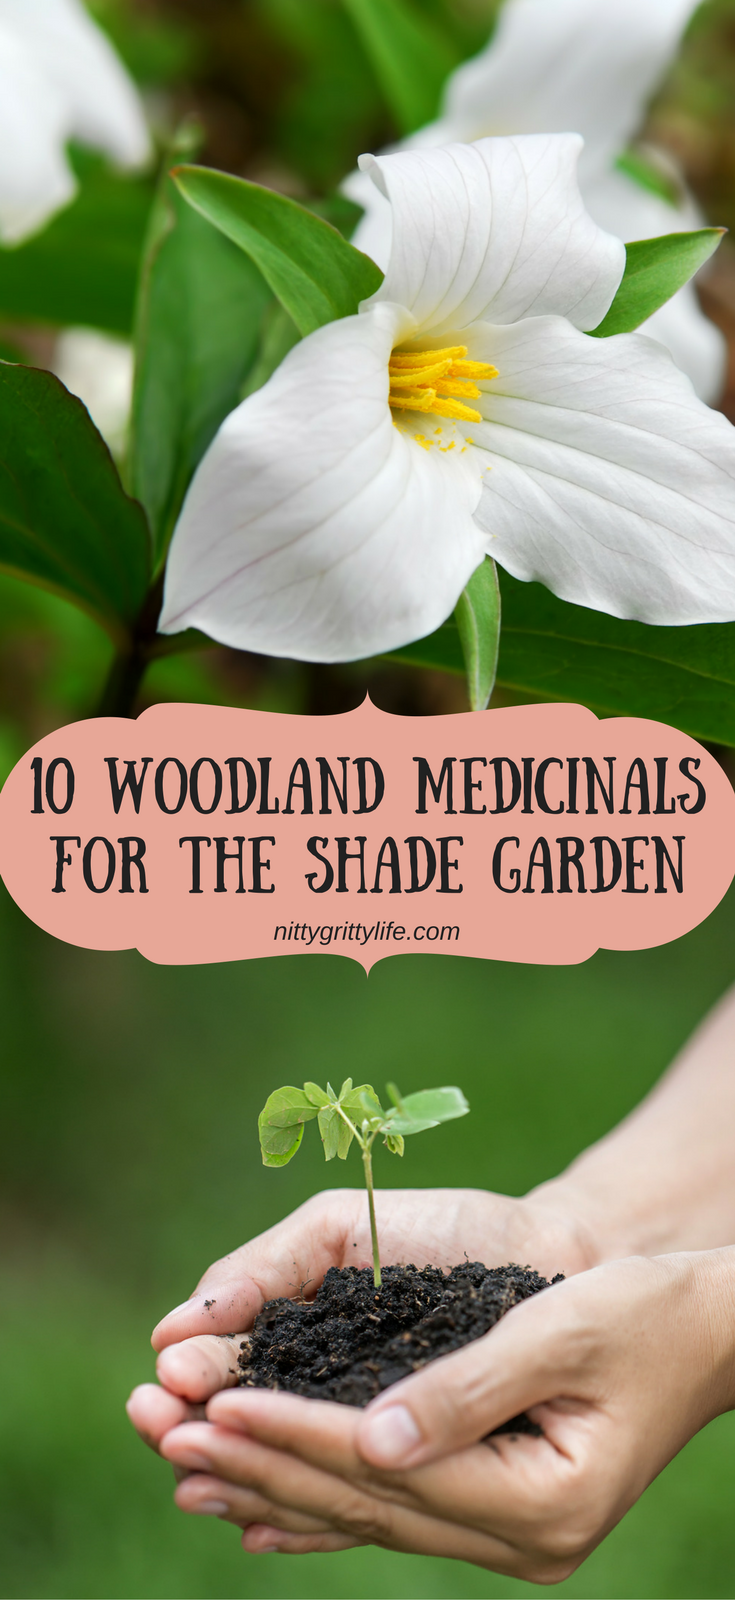 Plant your shade garden to these woodland medicinals and you will be pulling double duty by growing medicine and supporting conservation efforts! #shadegarden #woodlandmedicinals #herbalmedicine #forestgarden via @nittygrittylife